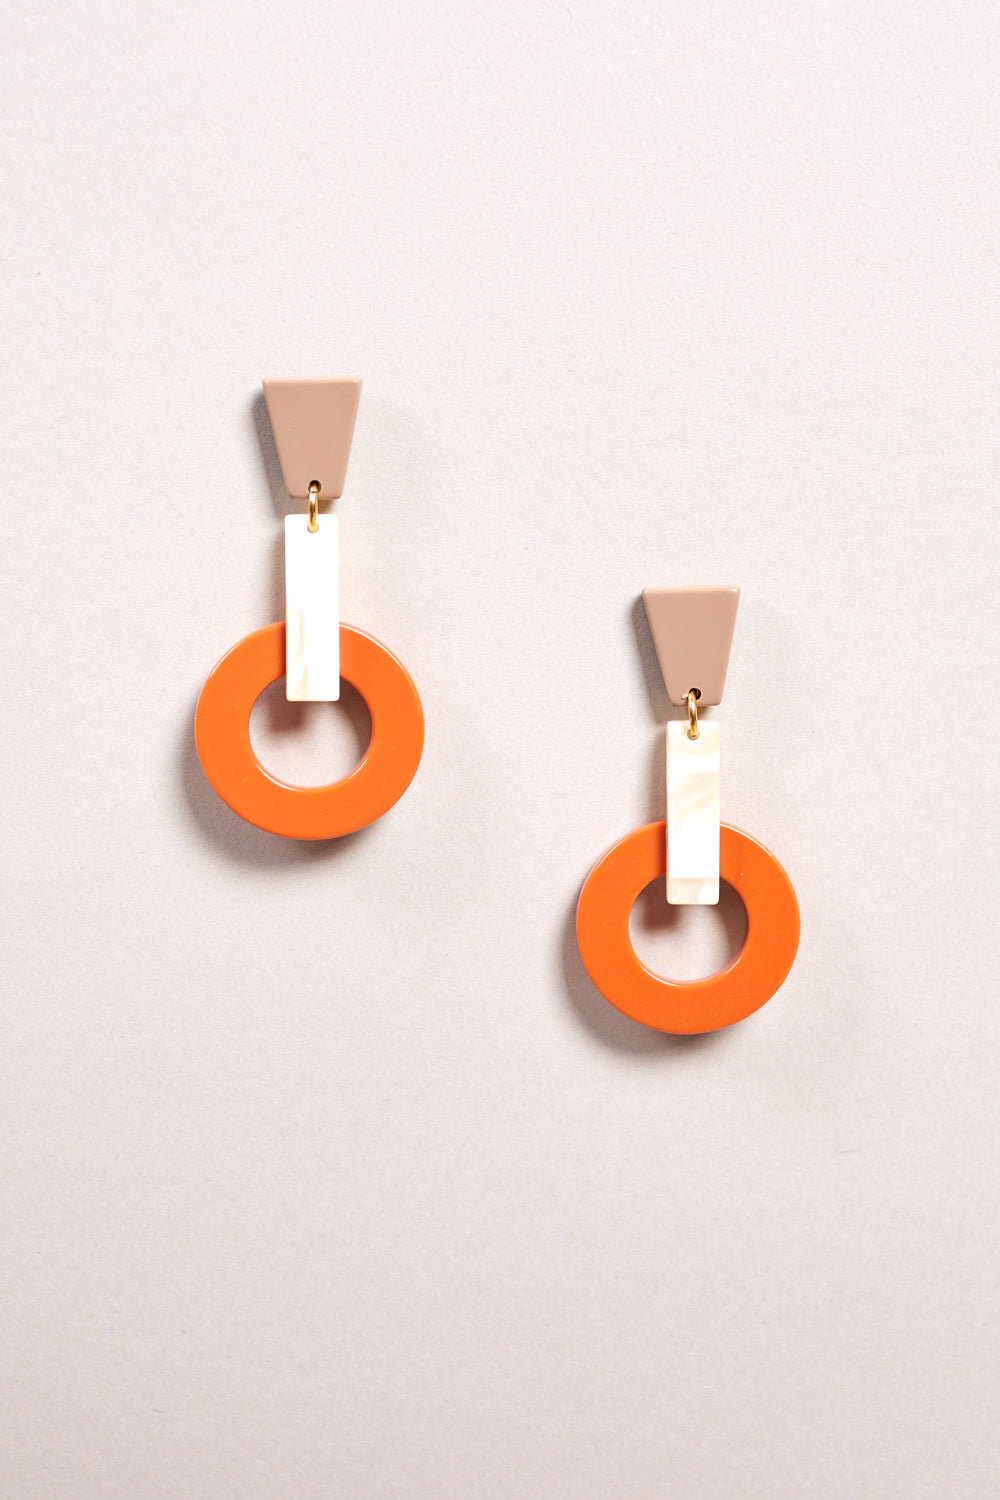 Silence Earring in Naranja